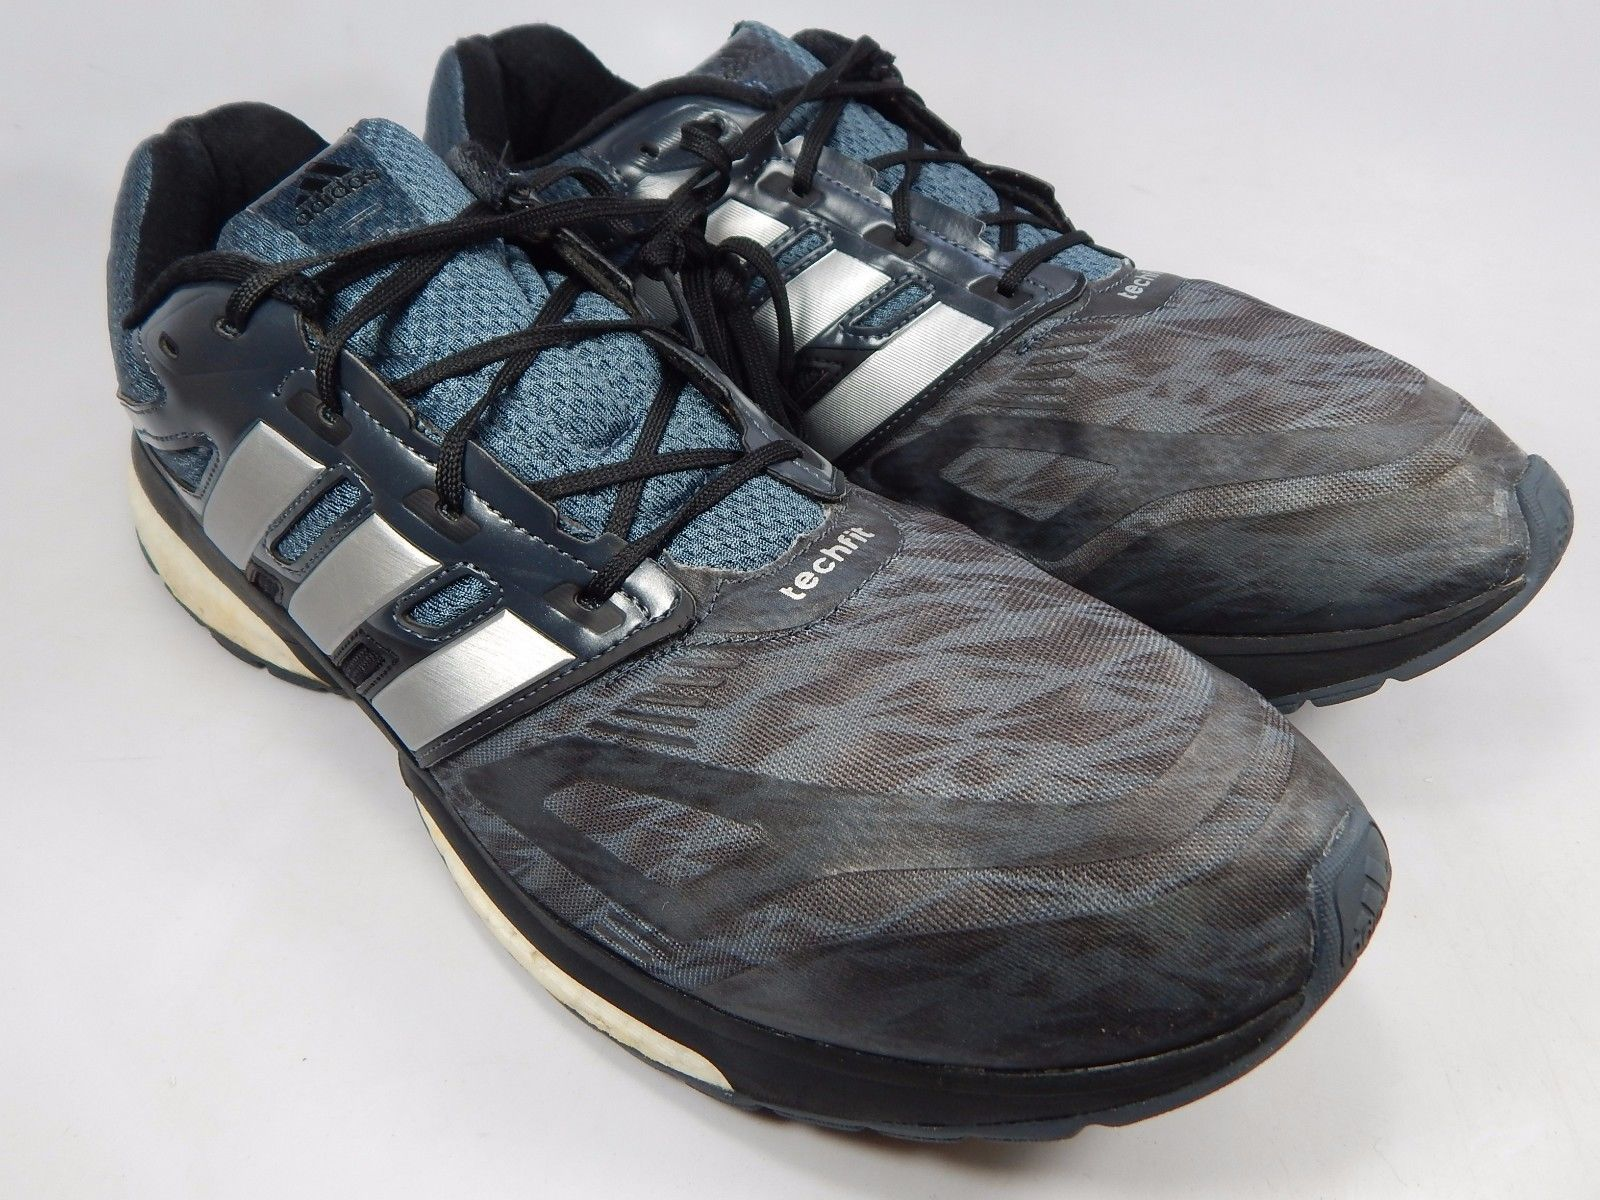 Adidas Response Boost Techfit Men's Running Shoes Size US 14 M (D) EU 49 1/3